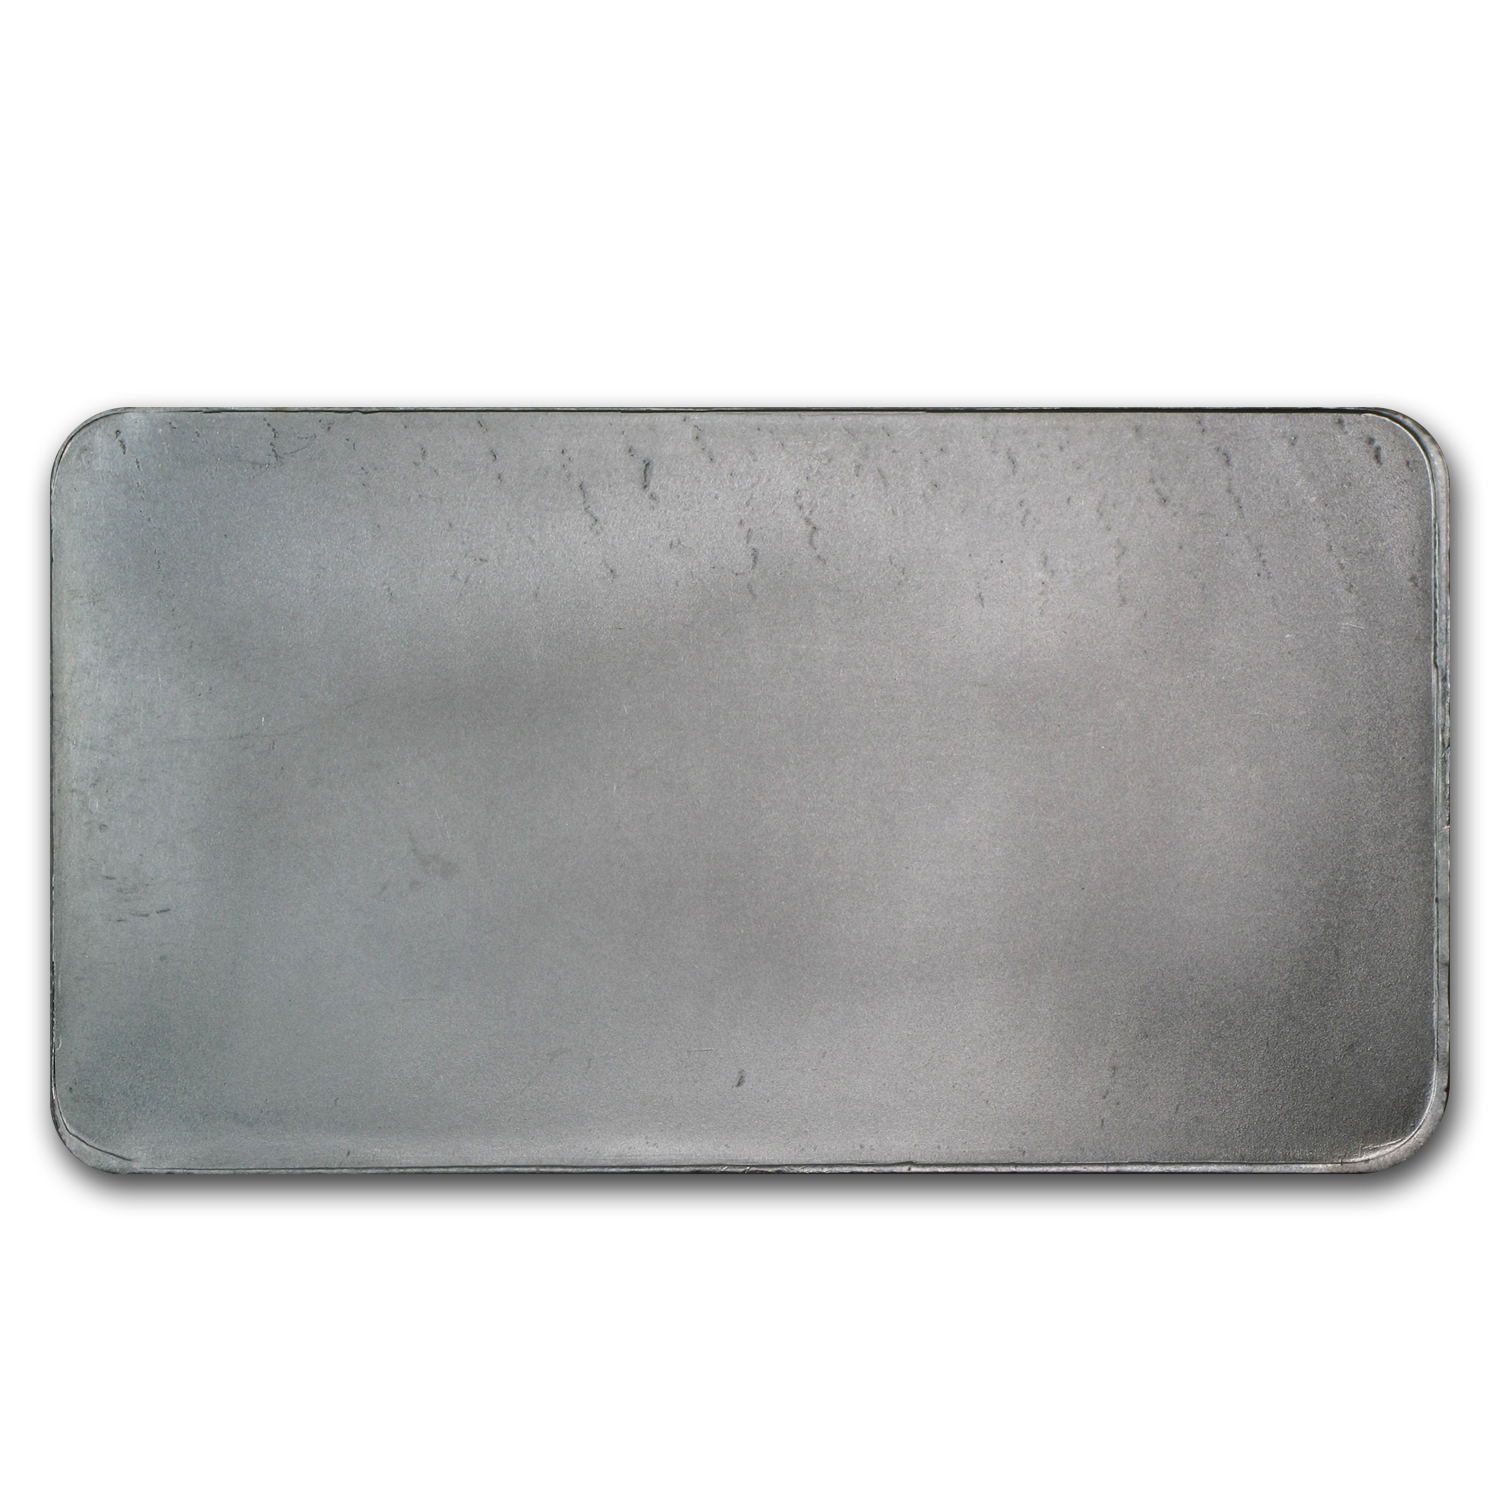 10 oz Silver Bars - Buffalo